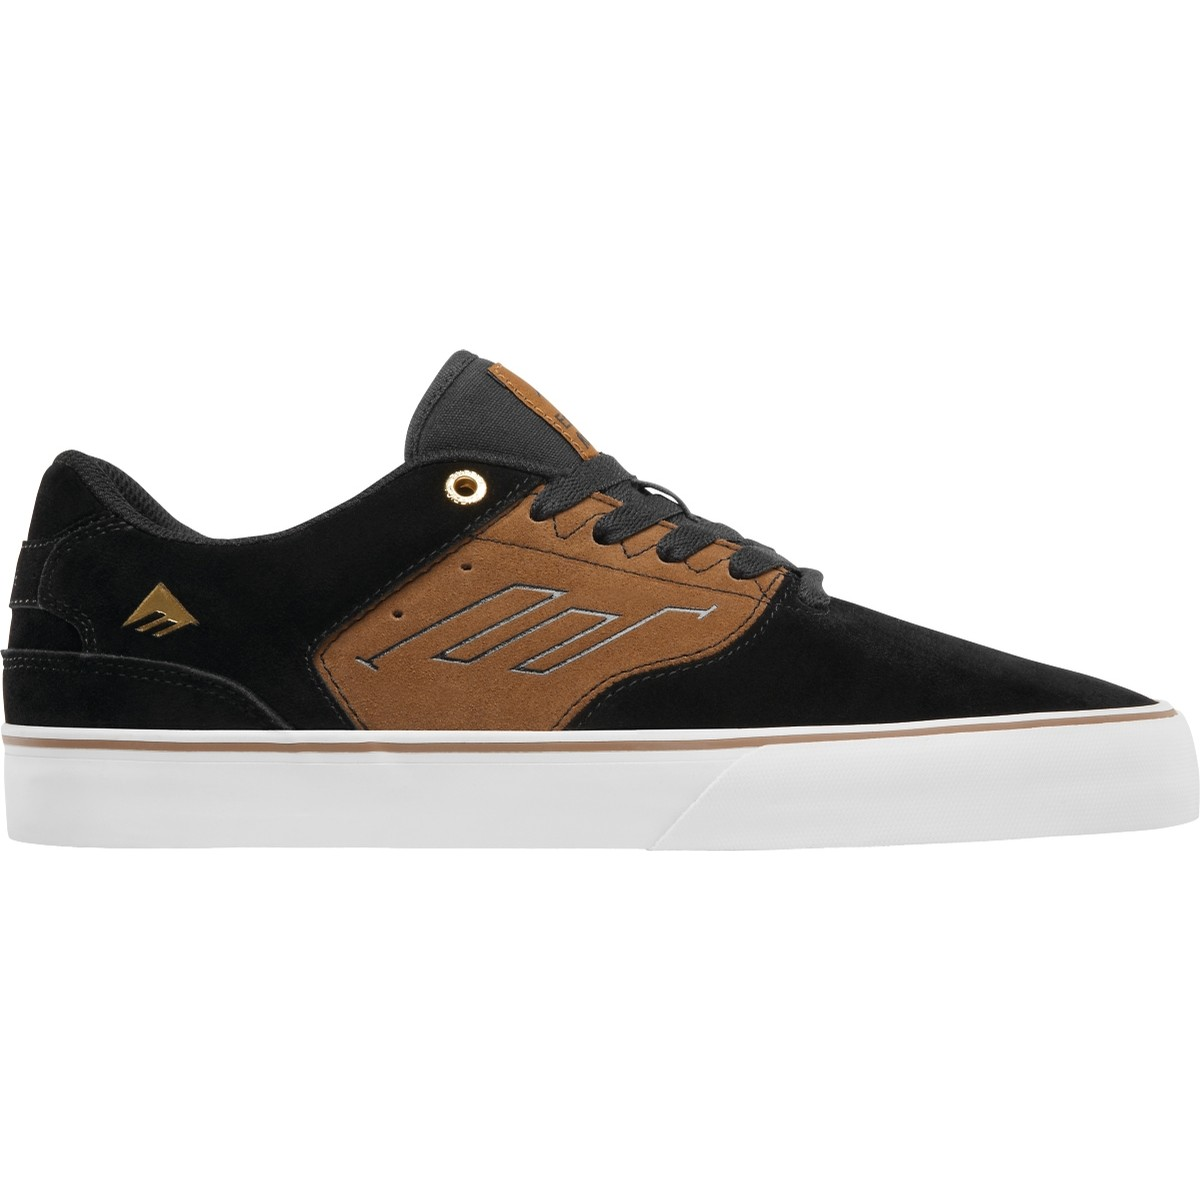 The Reynolds Low Vulc (Black/Tan)